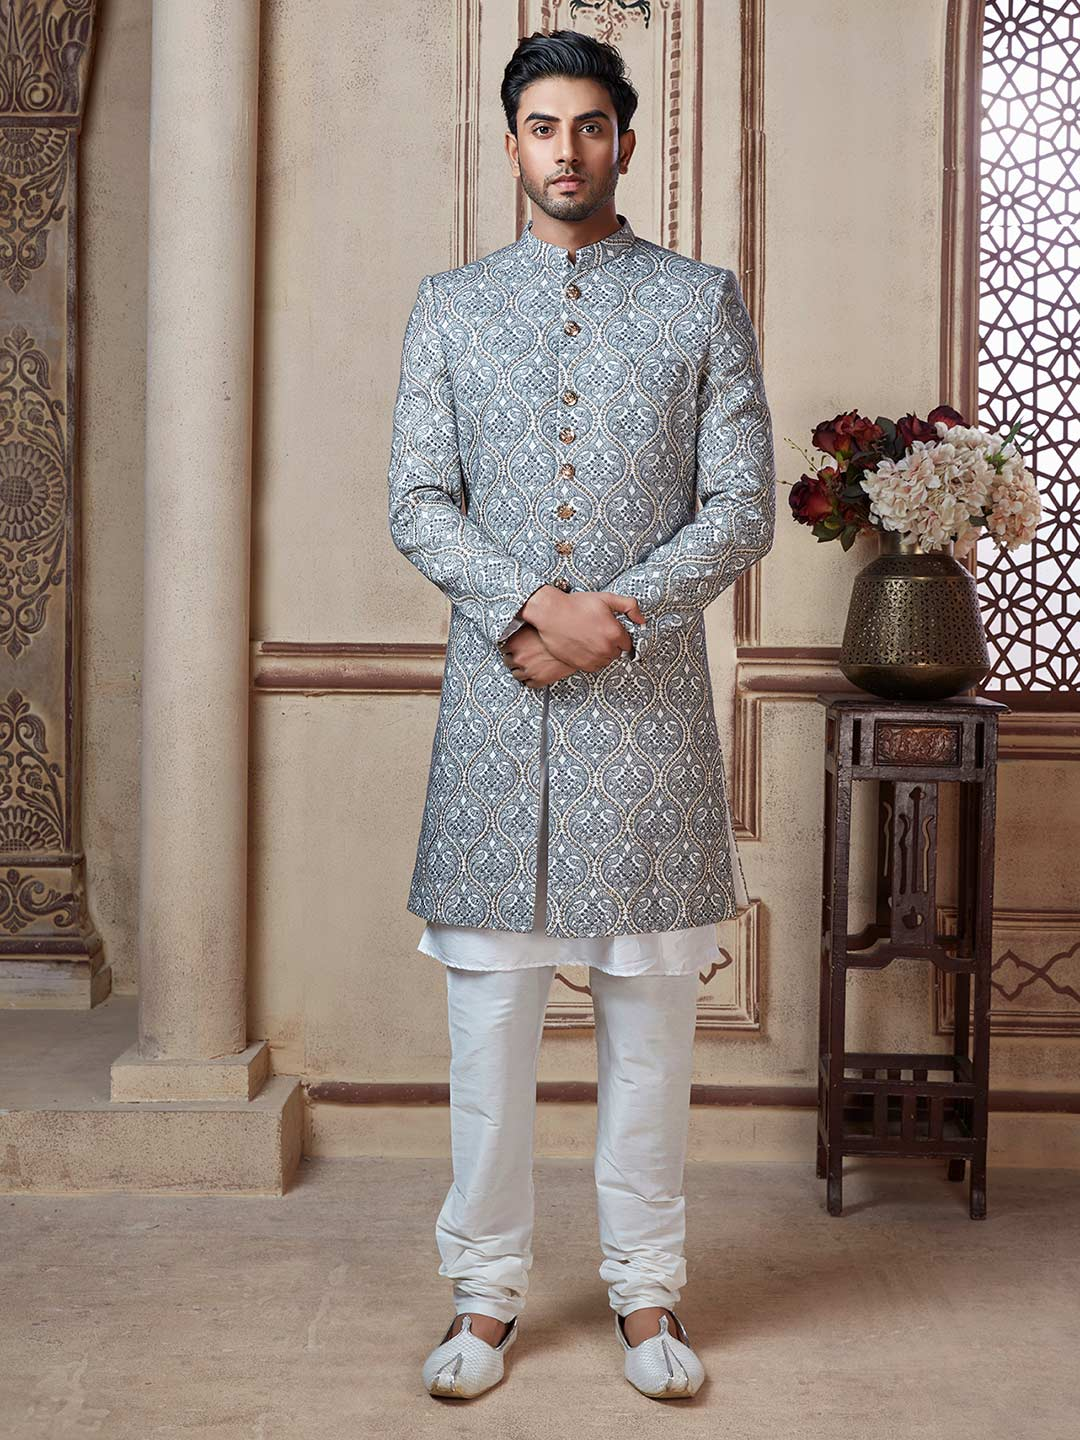 Image result for images of Sherwani Suit